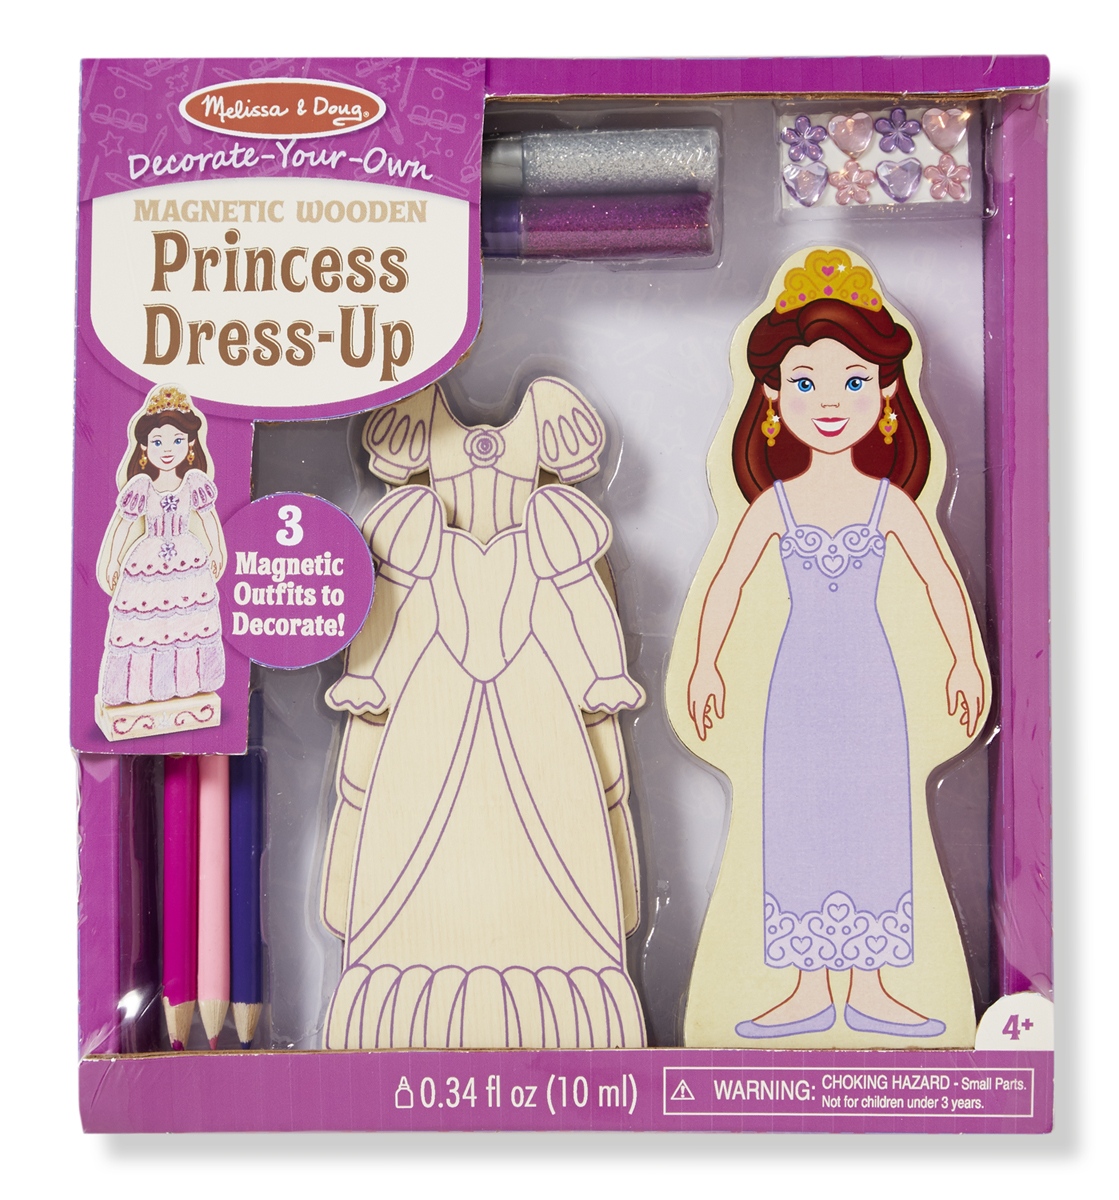 Melissa & Doug - Decorate-Your-Own Wooden Magnetic Princess Dress-Up